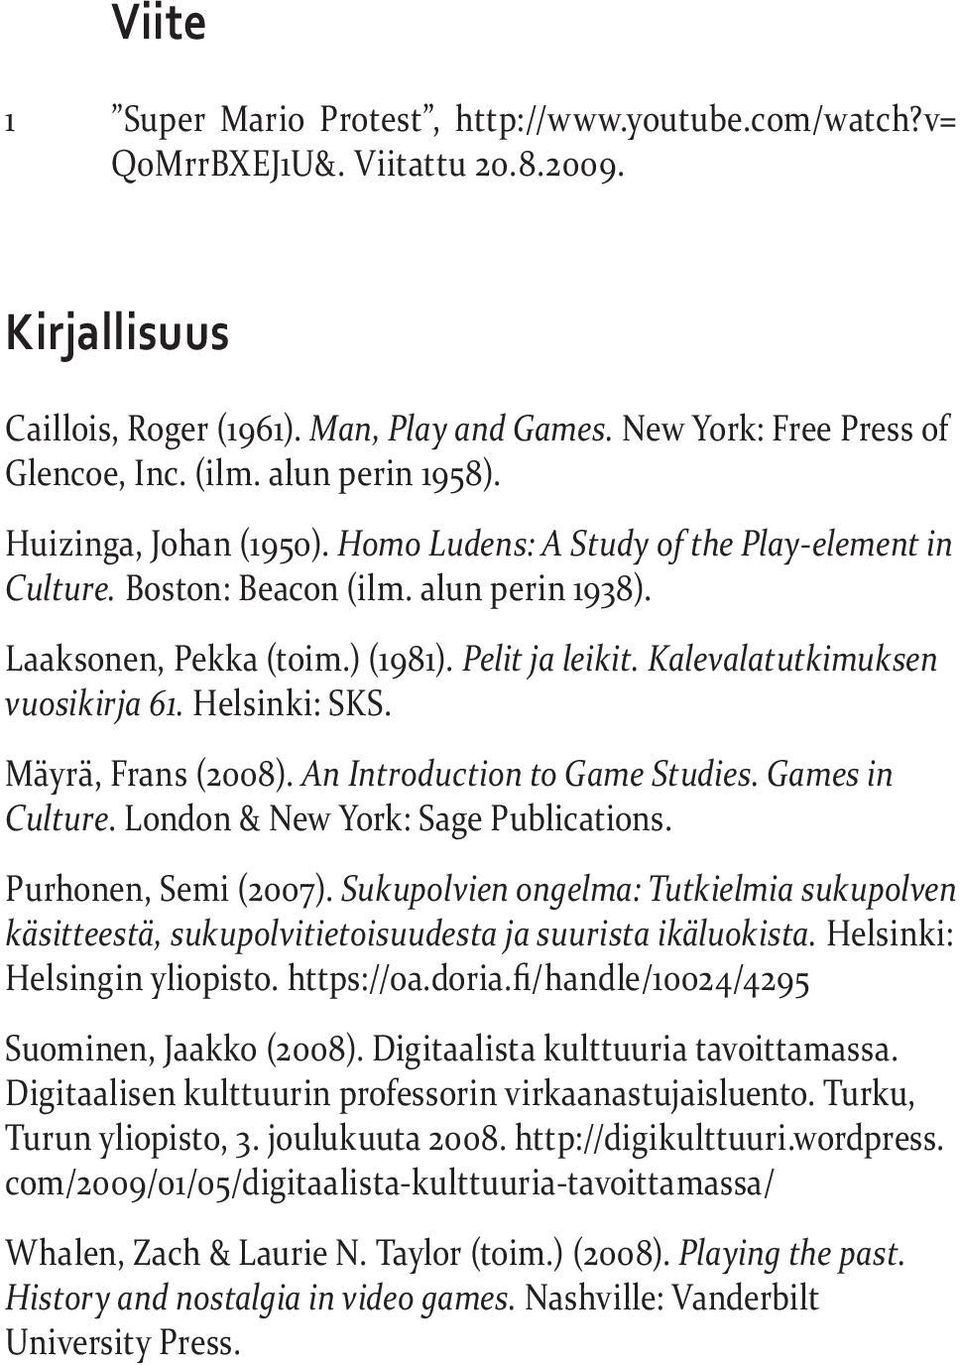 Kalevalatutkimuksen vuosikirja 61. Helsinki: SKS. Mäyrä, Frans (2008). An Introduction to Game Studies. Games in Culture. London & New York: Sage Publications. Purhonen, Semi (2007).